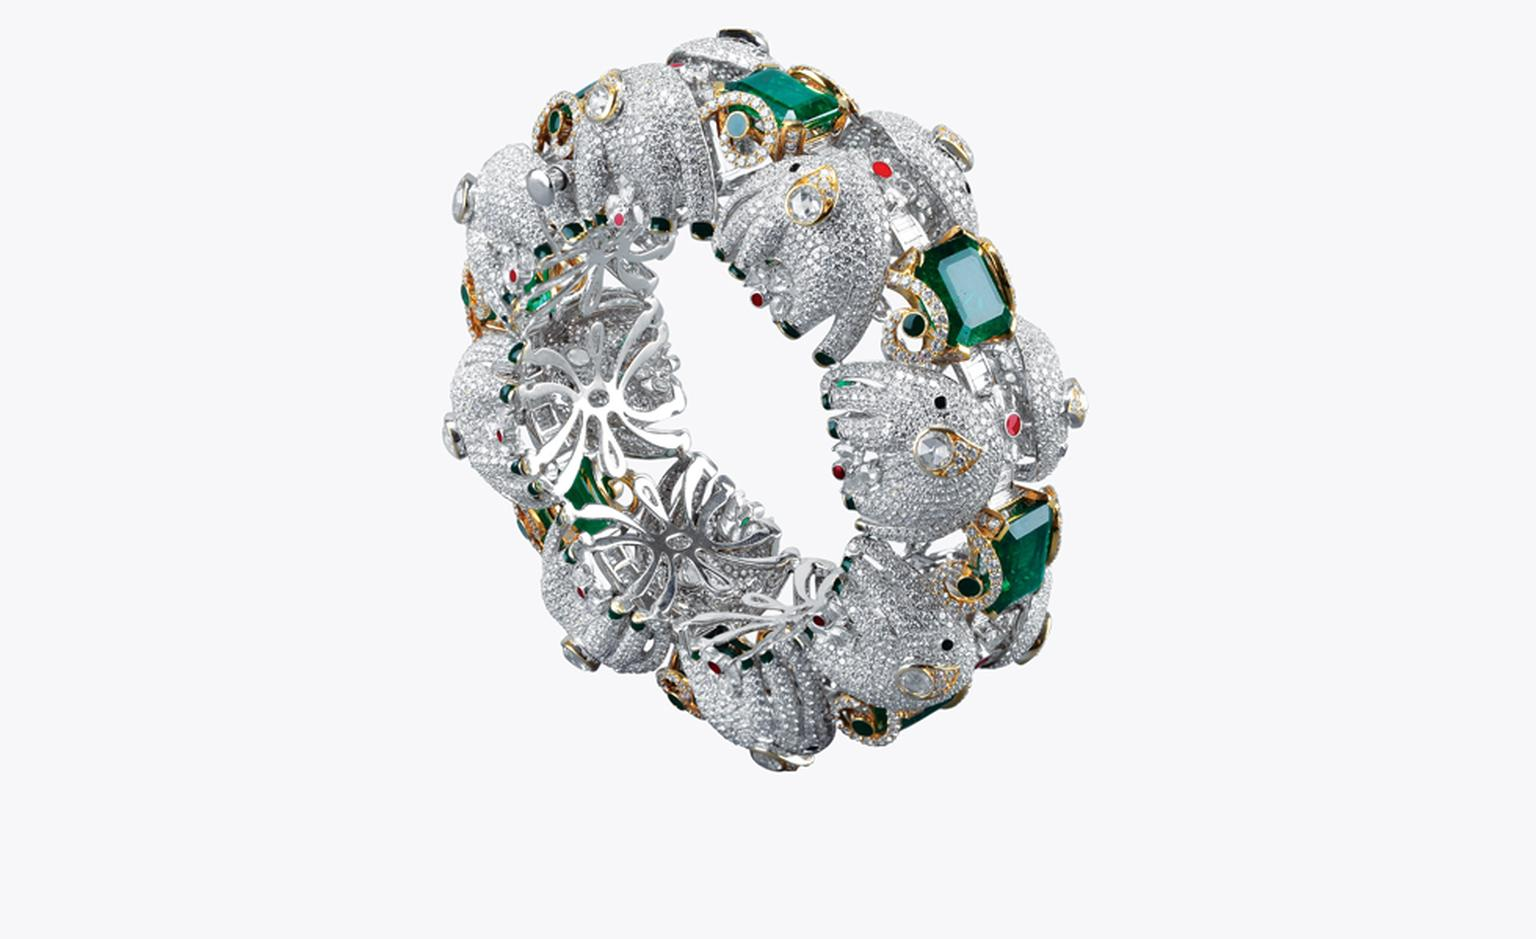 Narayan, Baroda. Bracelet, Zambian emeralds and diamonds in white old gold. Price from $200,000.